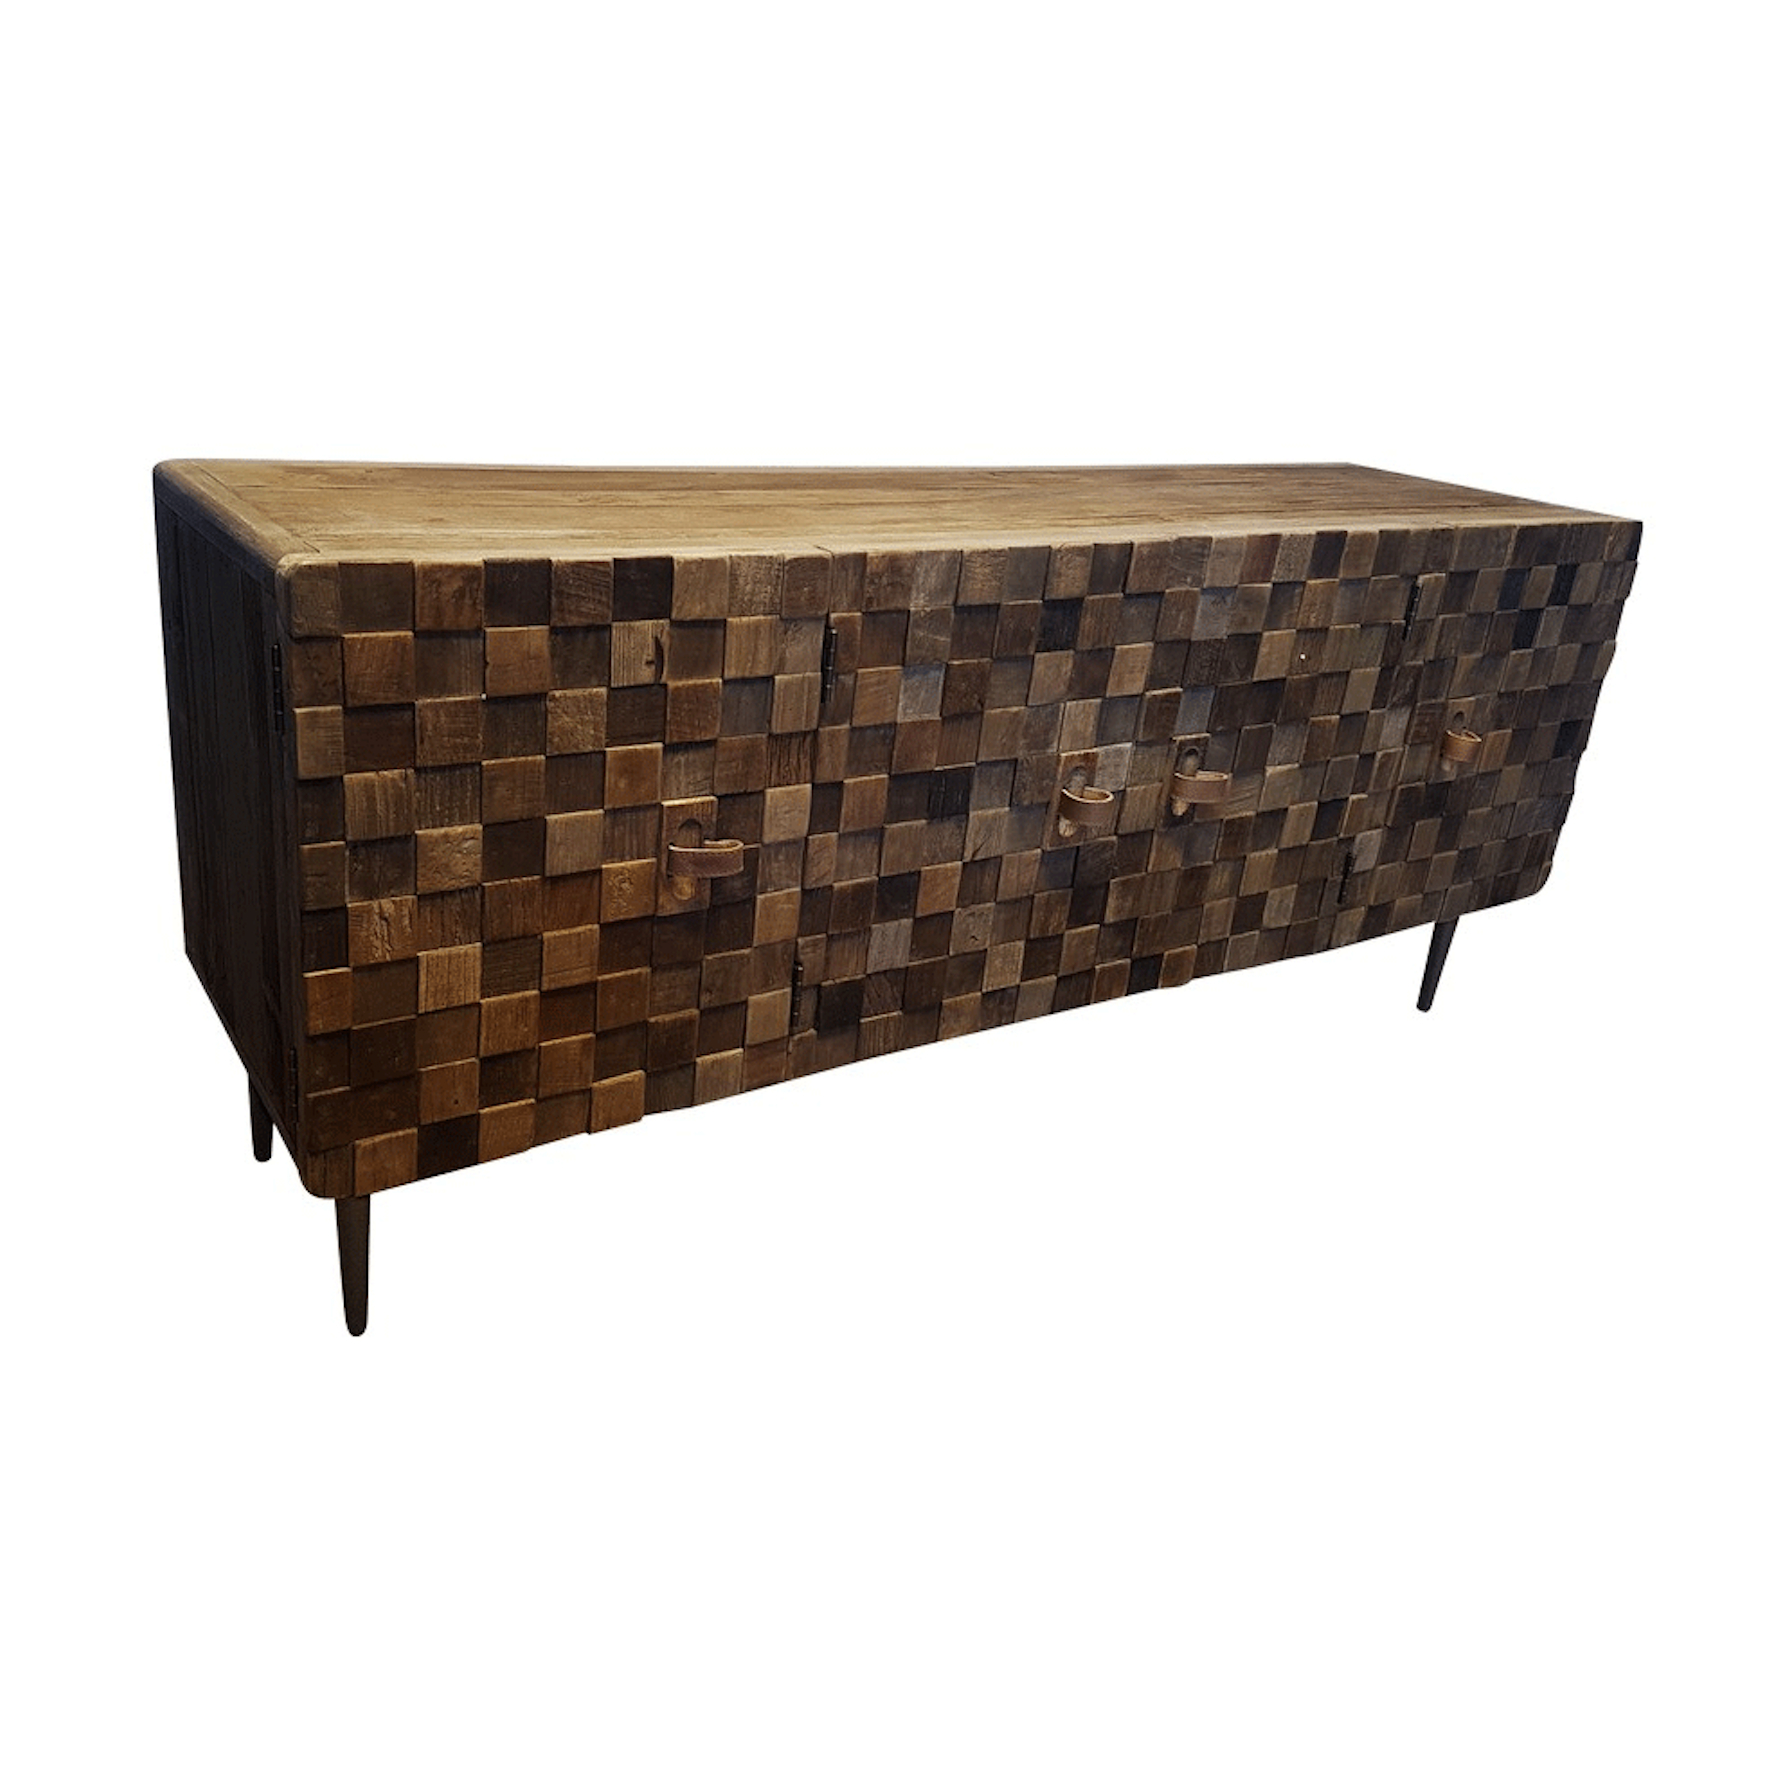 Baltic Sideboard – Reclaimed Elm/iron 2010mm – Urbano Interiors With Regard To Most Recently Released Reclaimed Elm Iron Coffee Tables (View 3 of 20)